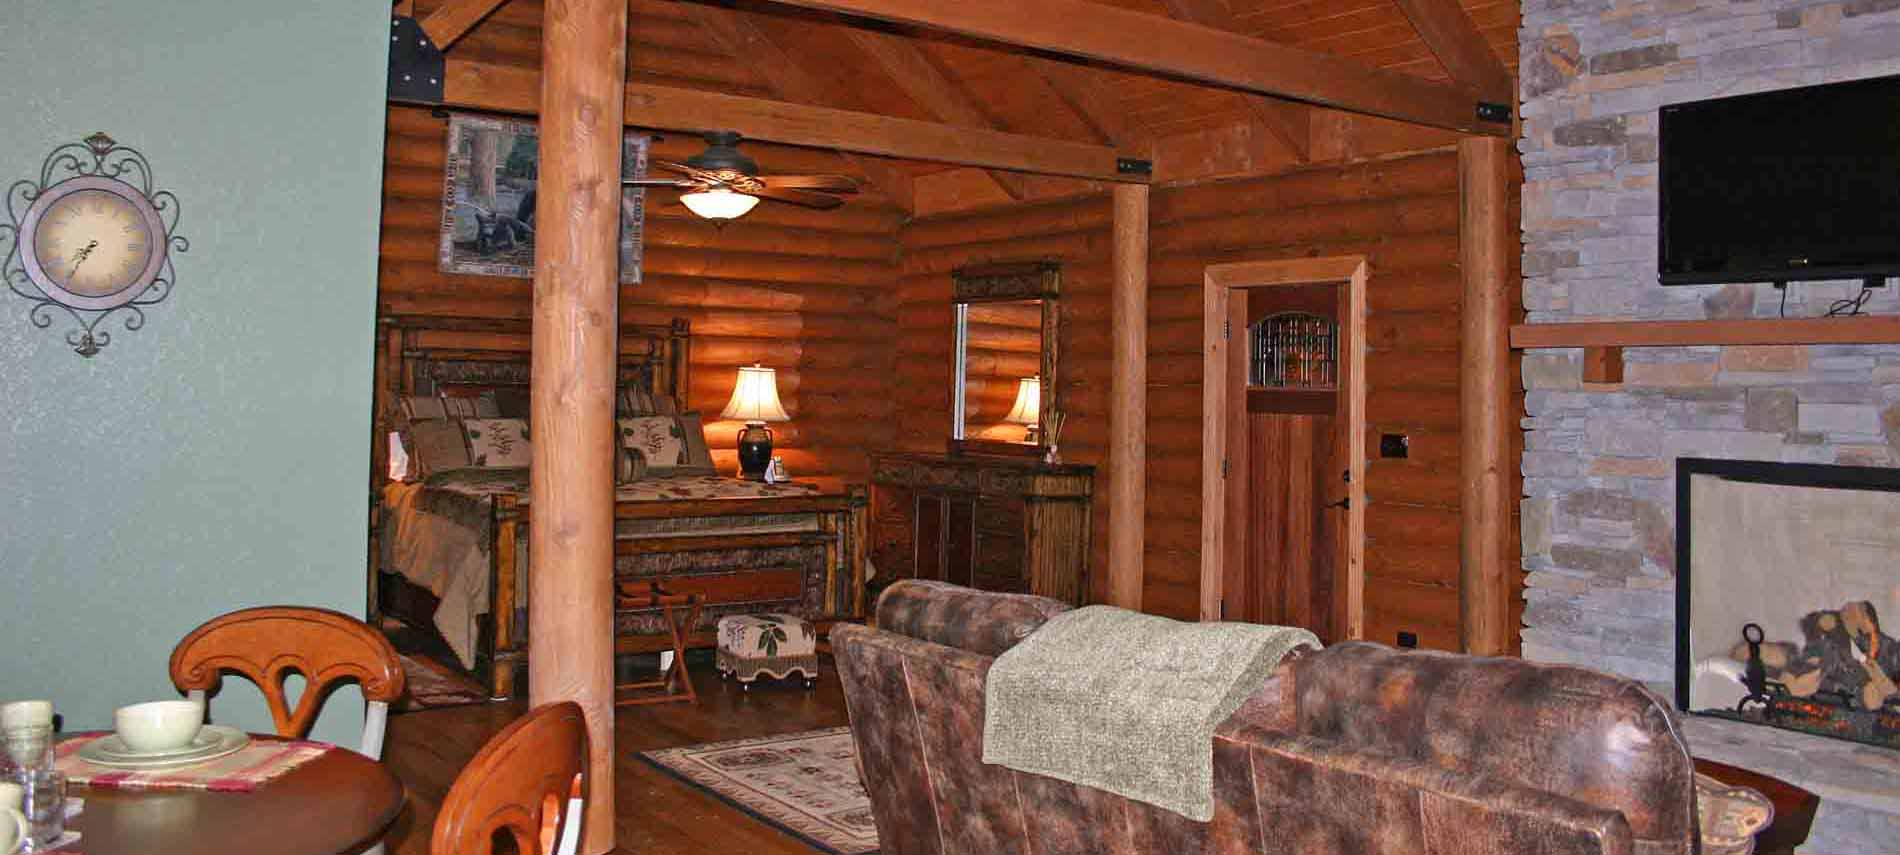 Log cabin Room with TV over stone fireplace beamed ceiling and dining table with leather couch